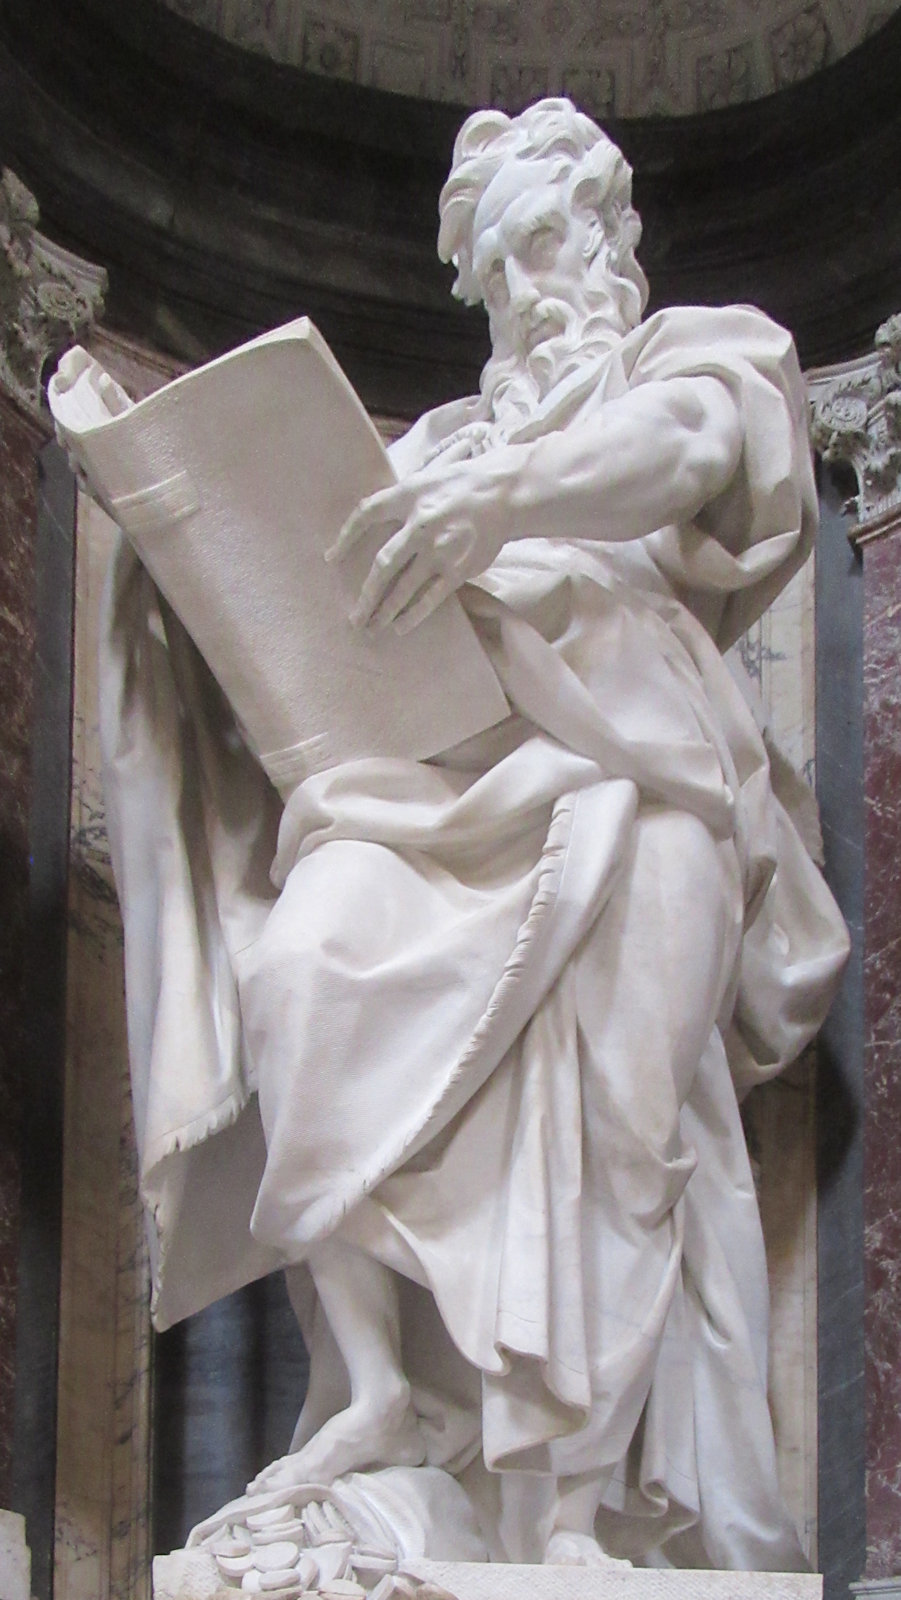 Camillo Rusconi: Statue, 1715, in der Basilika San Giovanni in Laterano in Rom